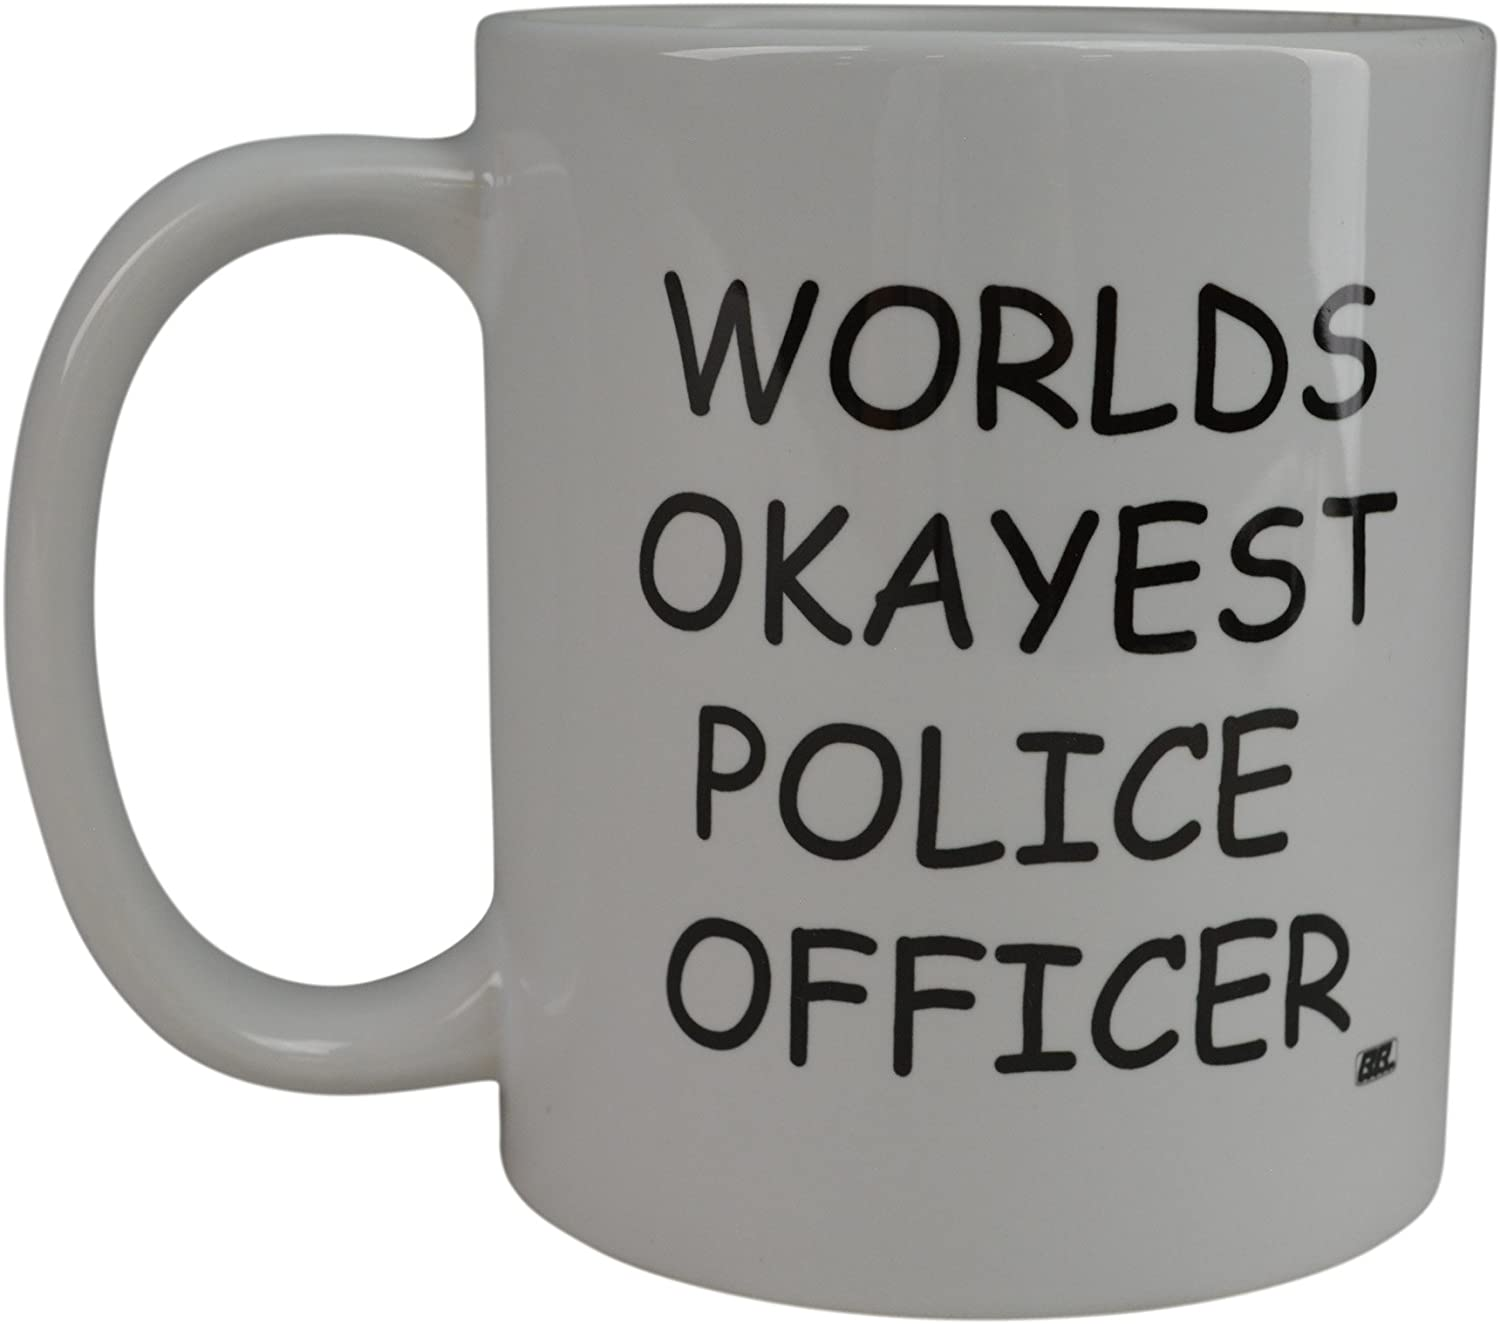 Rogue River Funny Coffee Mug Wolds Okayest Police Officer Novelty Cup Great Gift Idea For Office Gag White Elephant Gift Humor Police Officer Cop Law Enforcement (Police Officer)